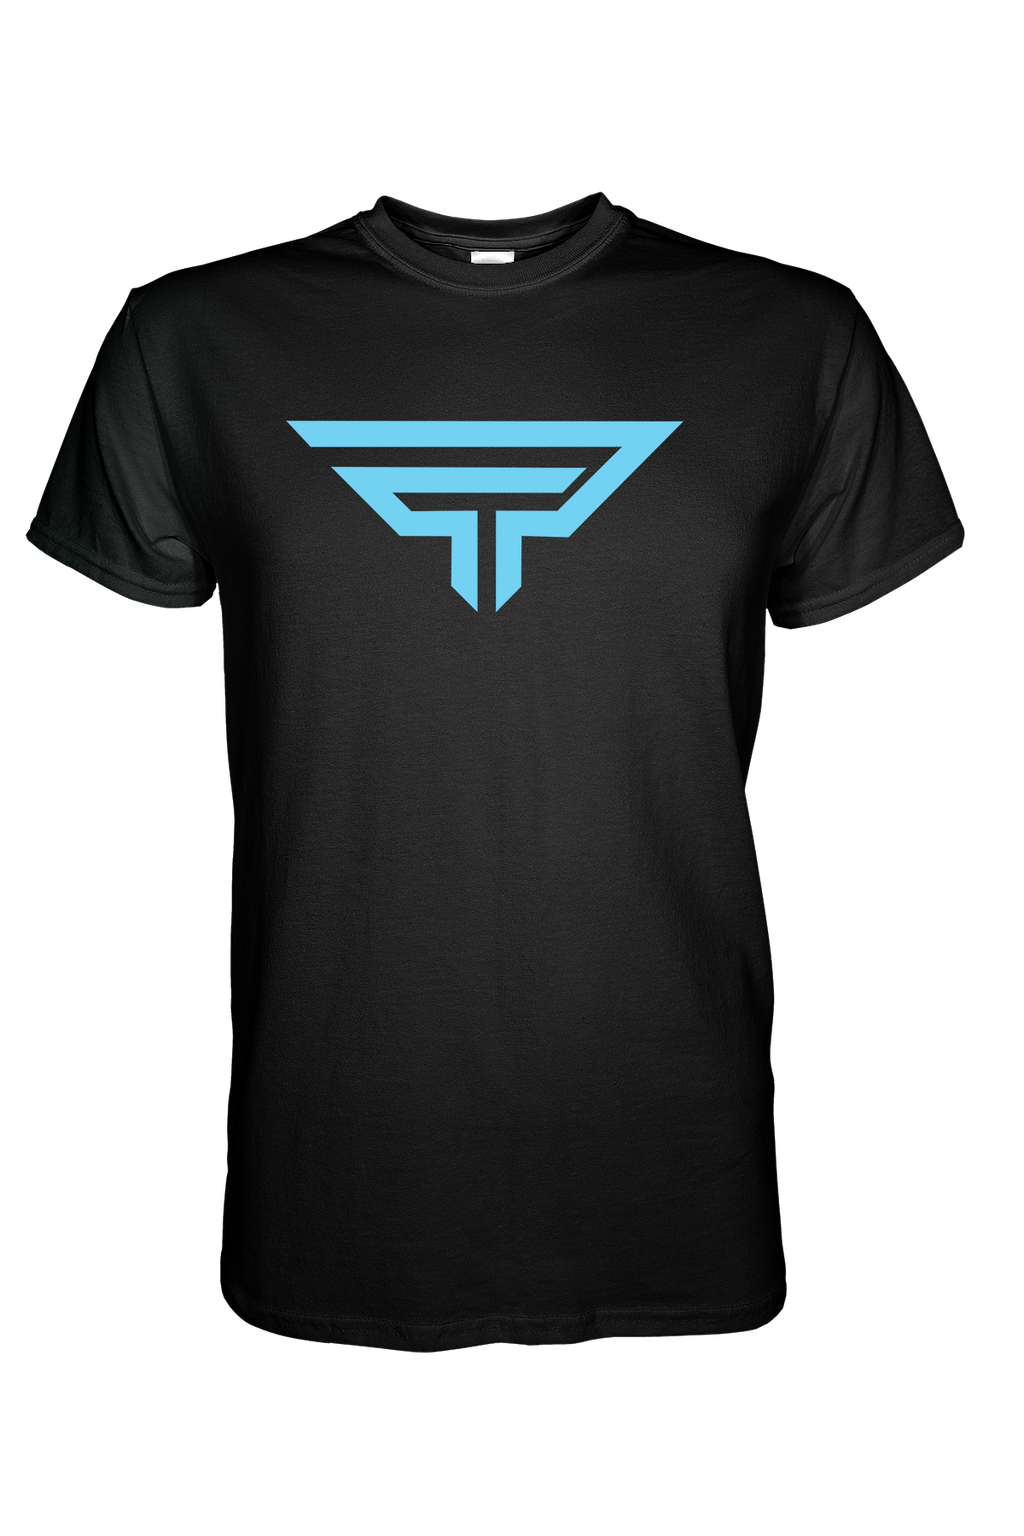 Temp Logo Shirt